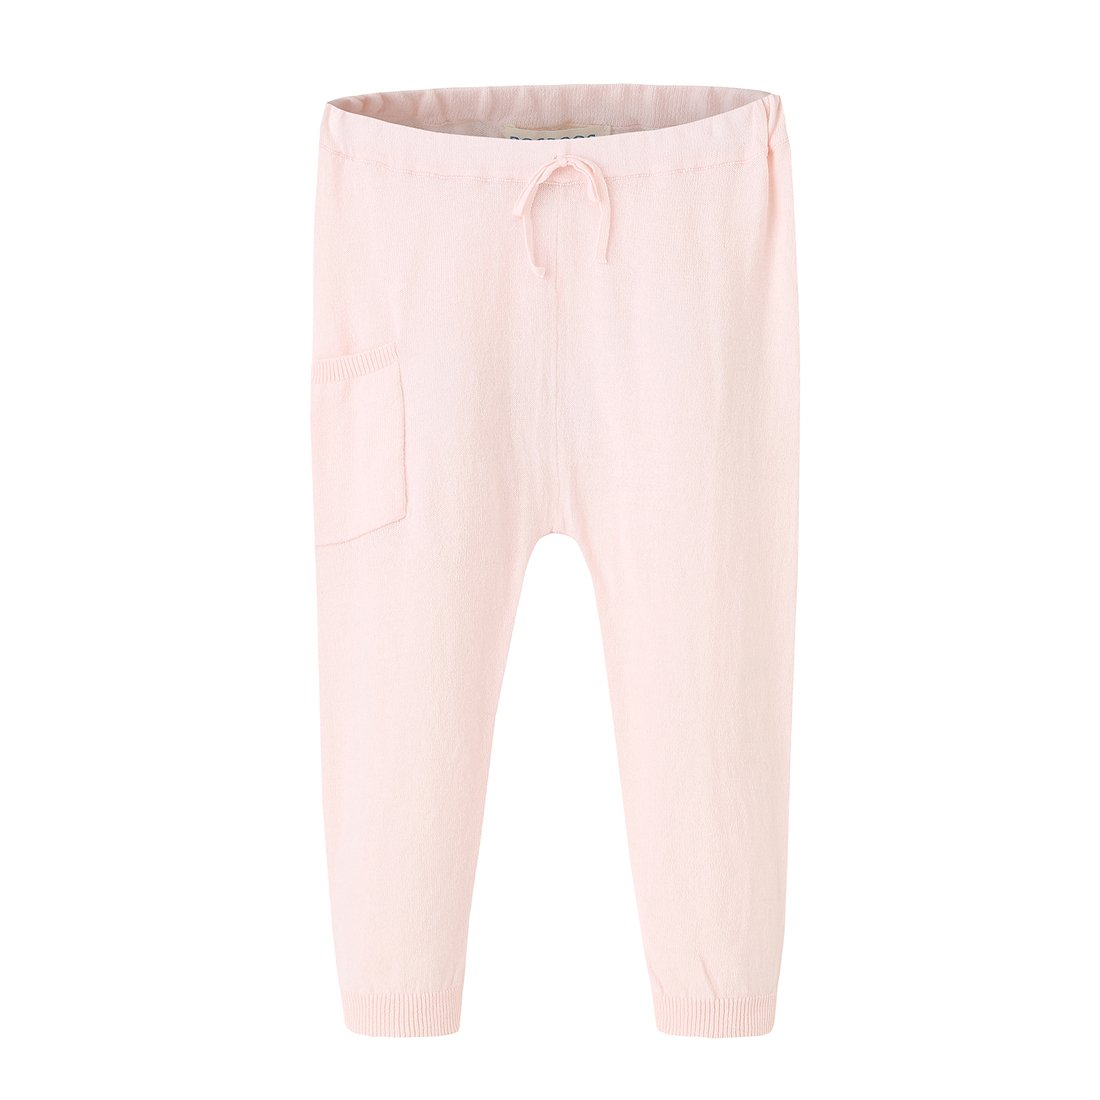 BOSBOOS Baby Toddler Boys Girls Cotton Solid Thin Pants for Summer (24M, Pink)